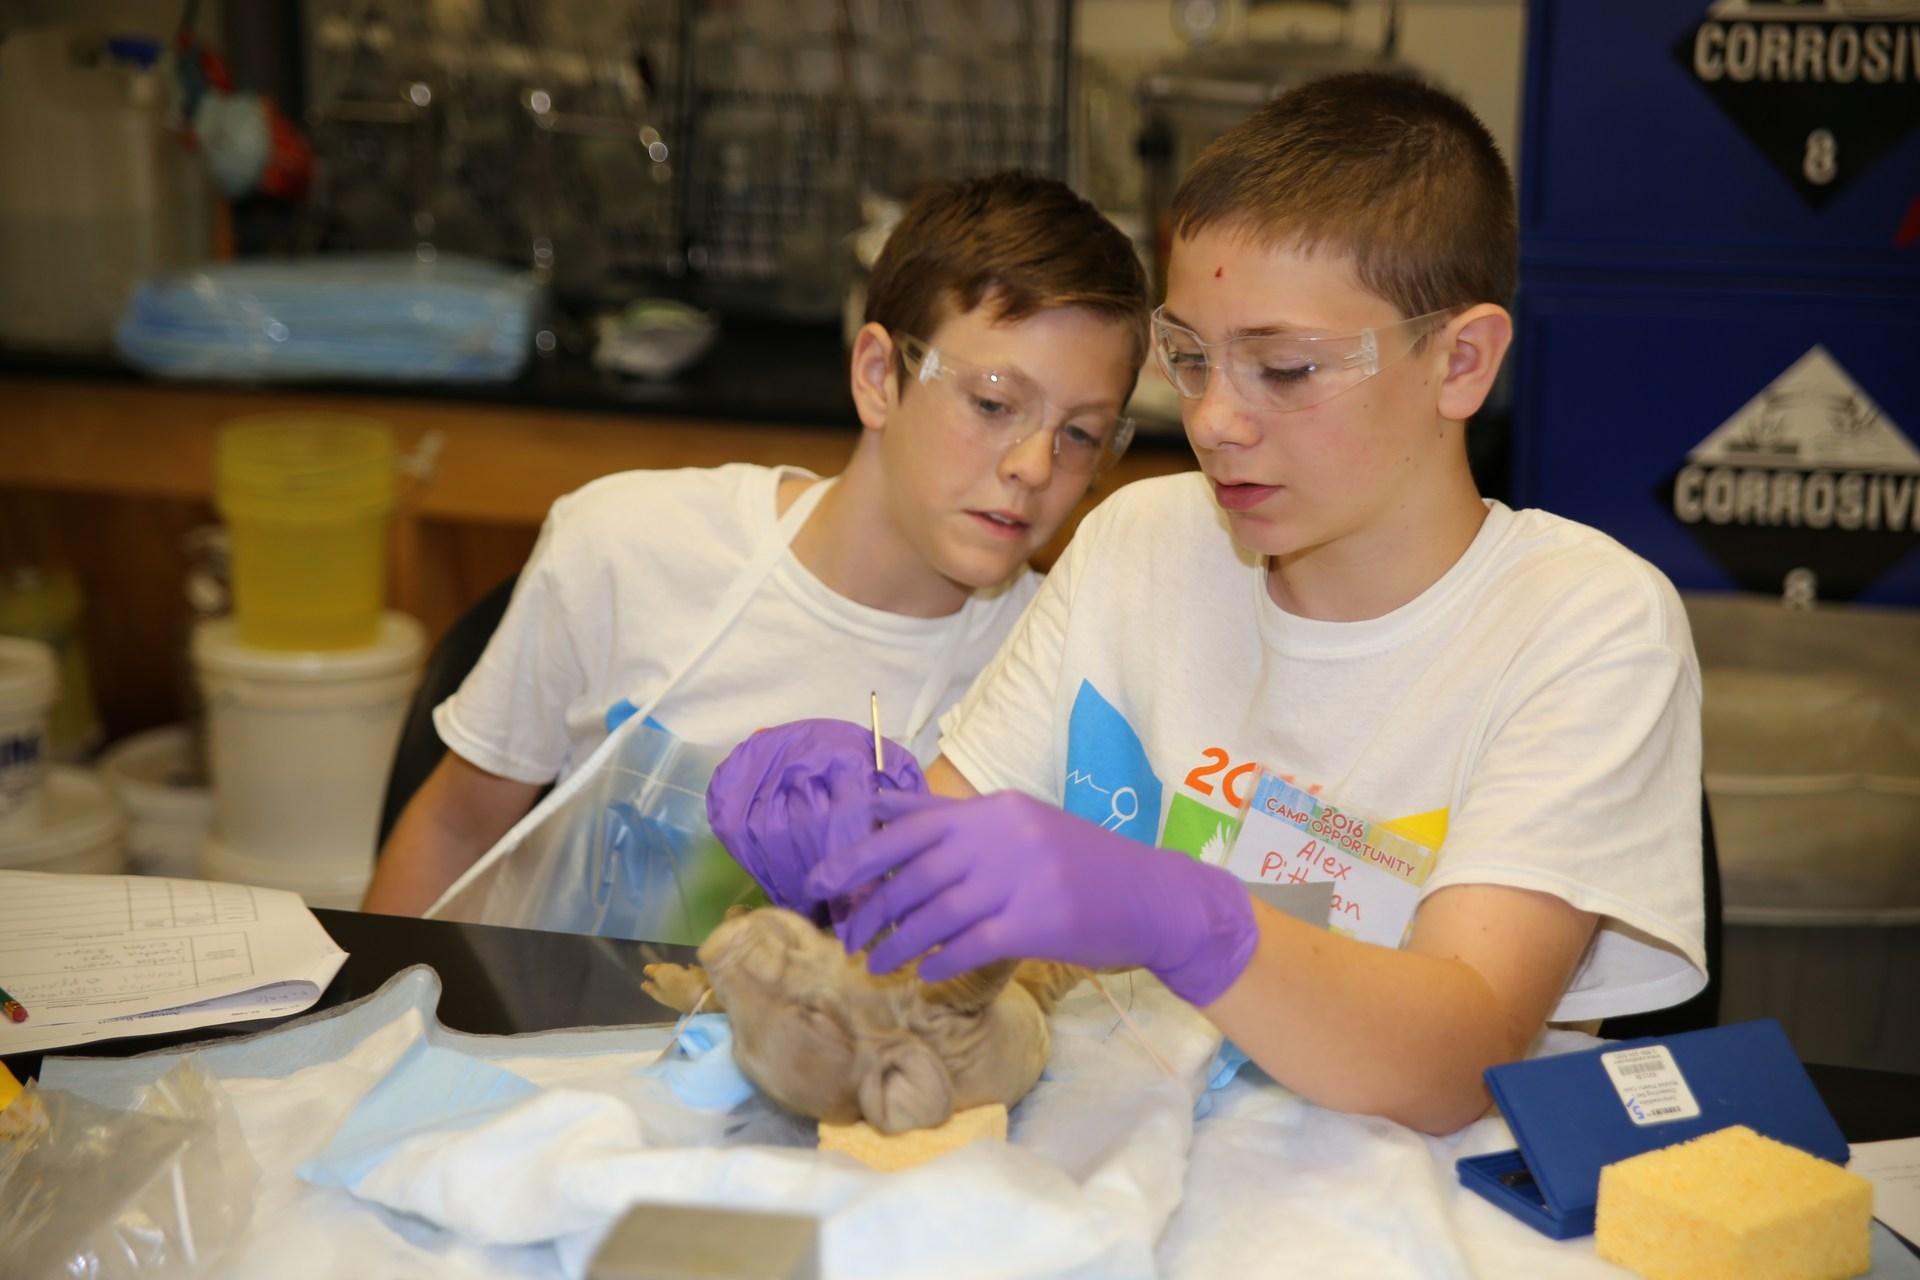 Students participate in Biology activities at Camp Opportunity